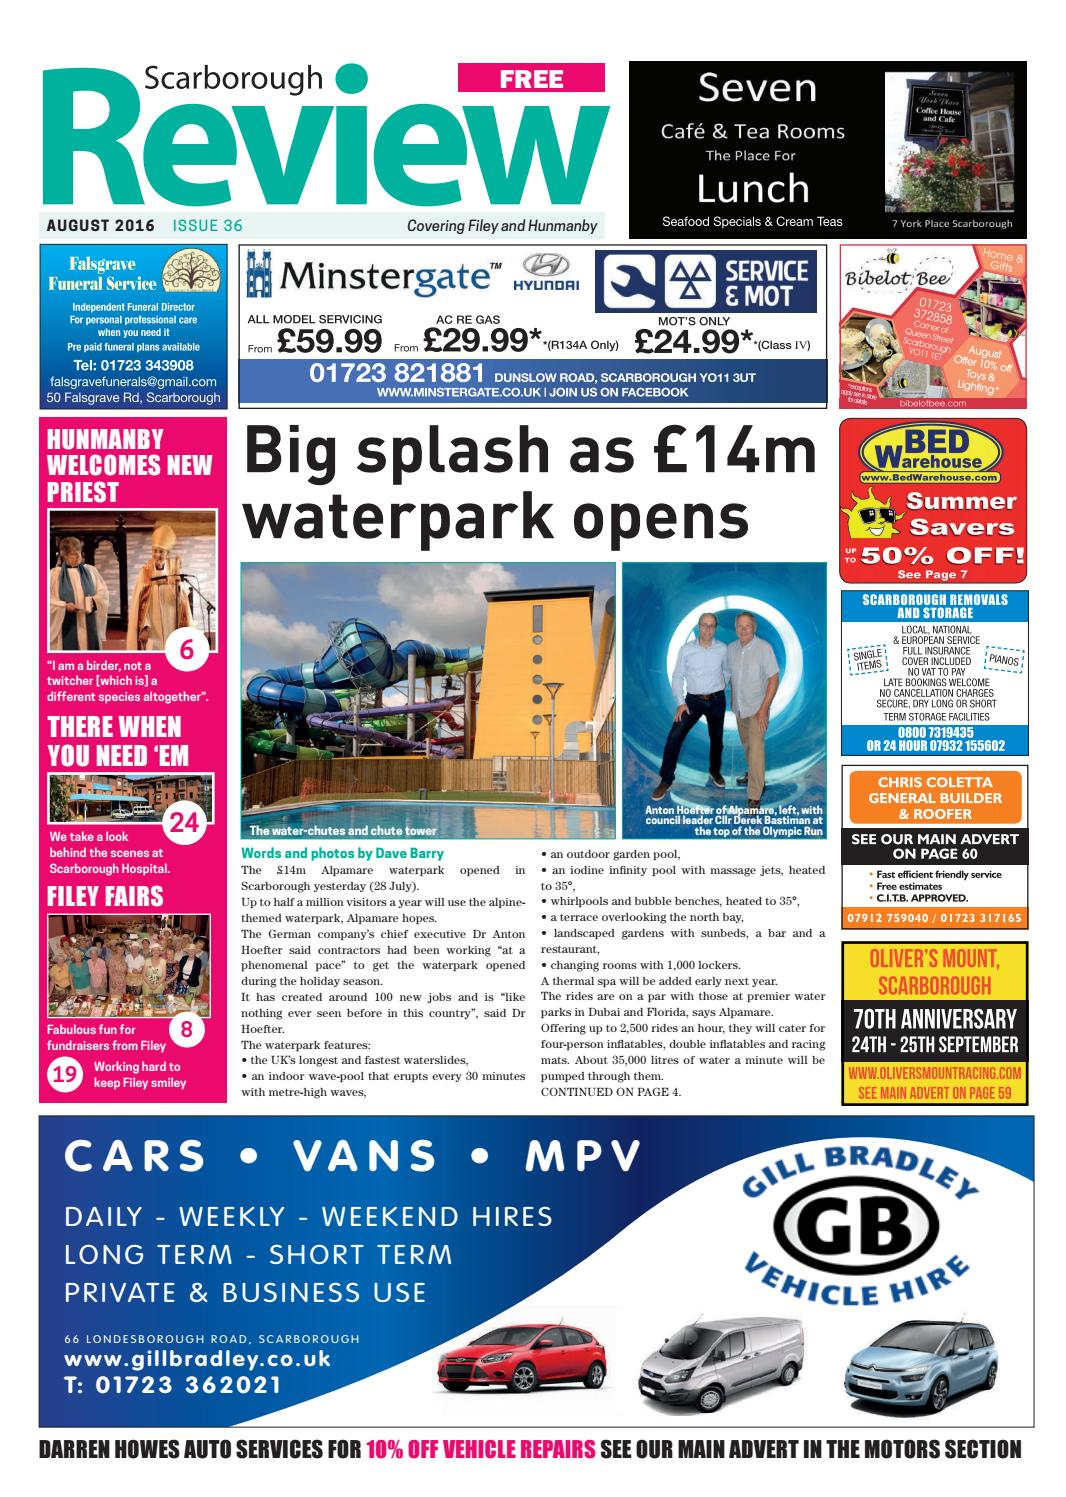 Scarborough Review August 2016 by Your Local Link Ltd - issuu 4d3276bc3fab